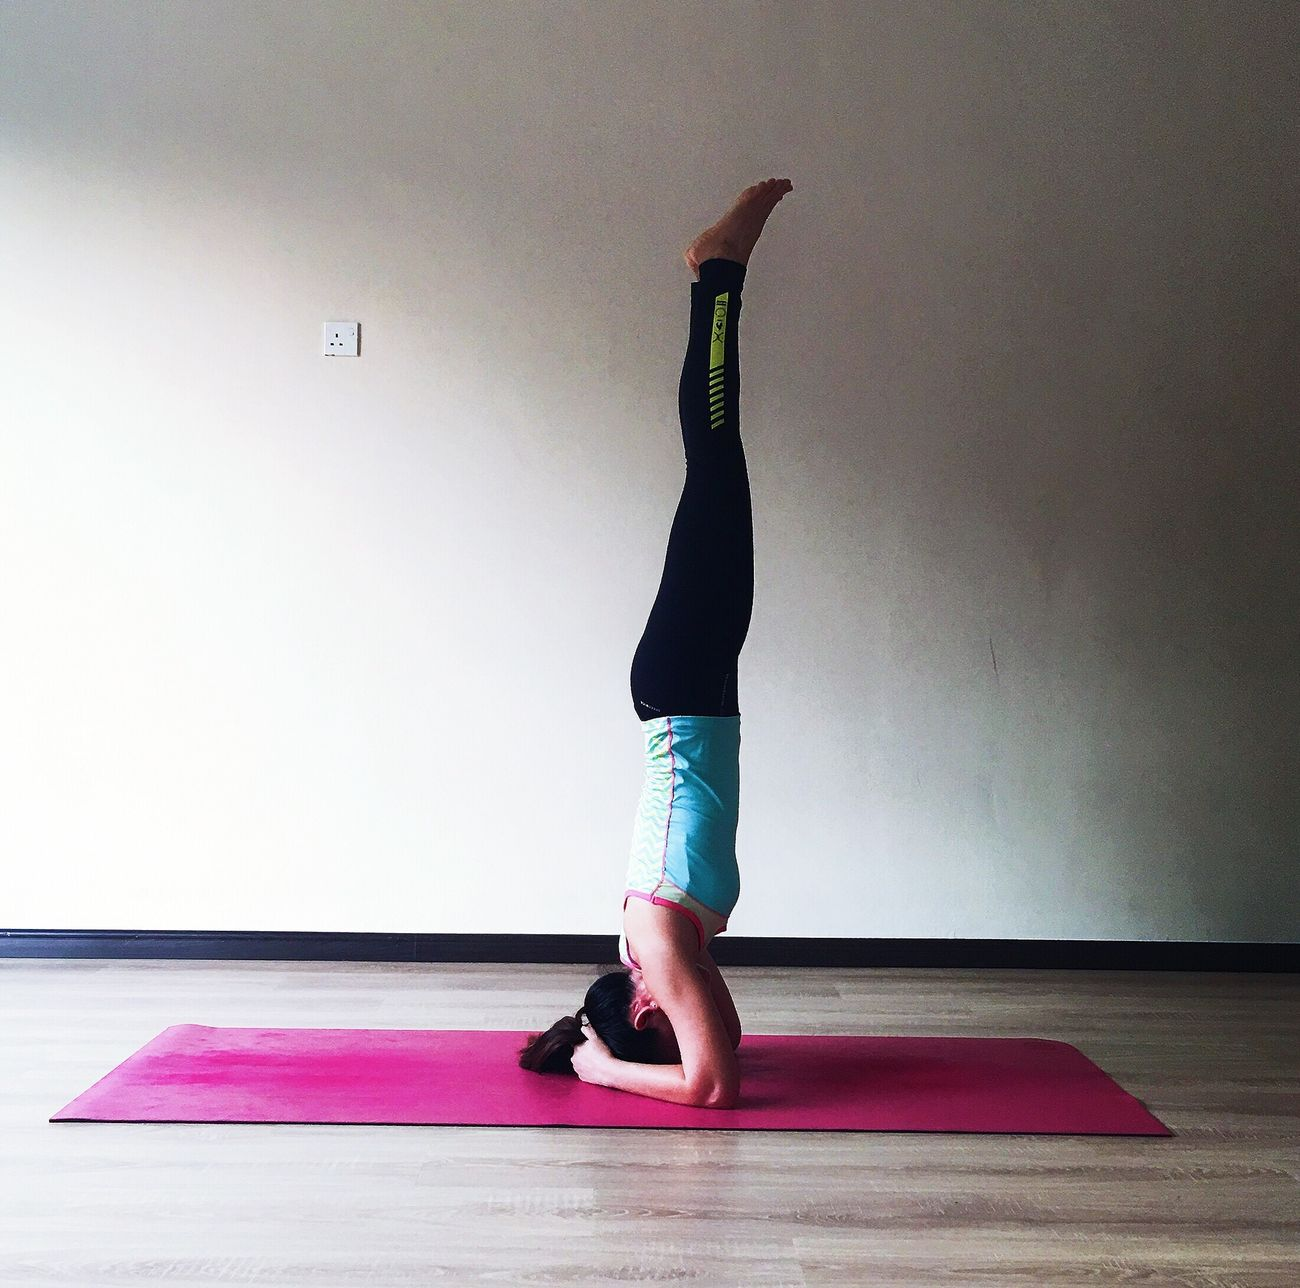 I Love Yoga Full Length Yoga Healthy Lifestyle Exercise Mat Exercising Real People One Person Balance Lifestyles Indoors  Flexibility Strength Upside Down Sports Clothing Sport Self Improvement People One Woman Only Adults Only Adult